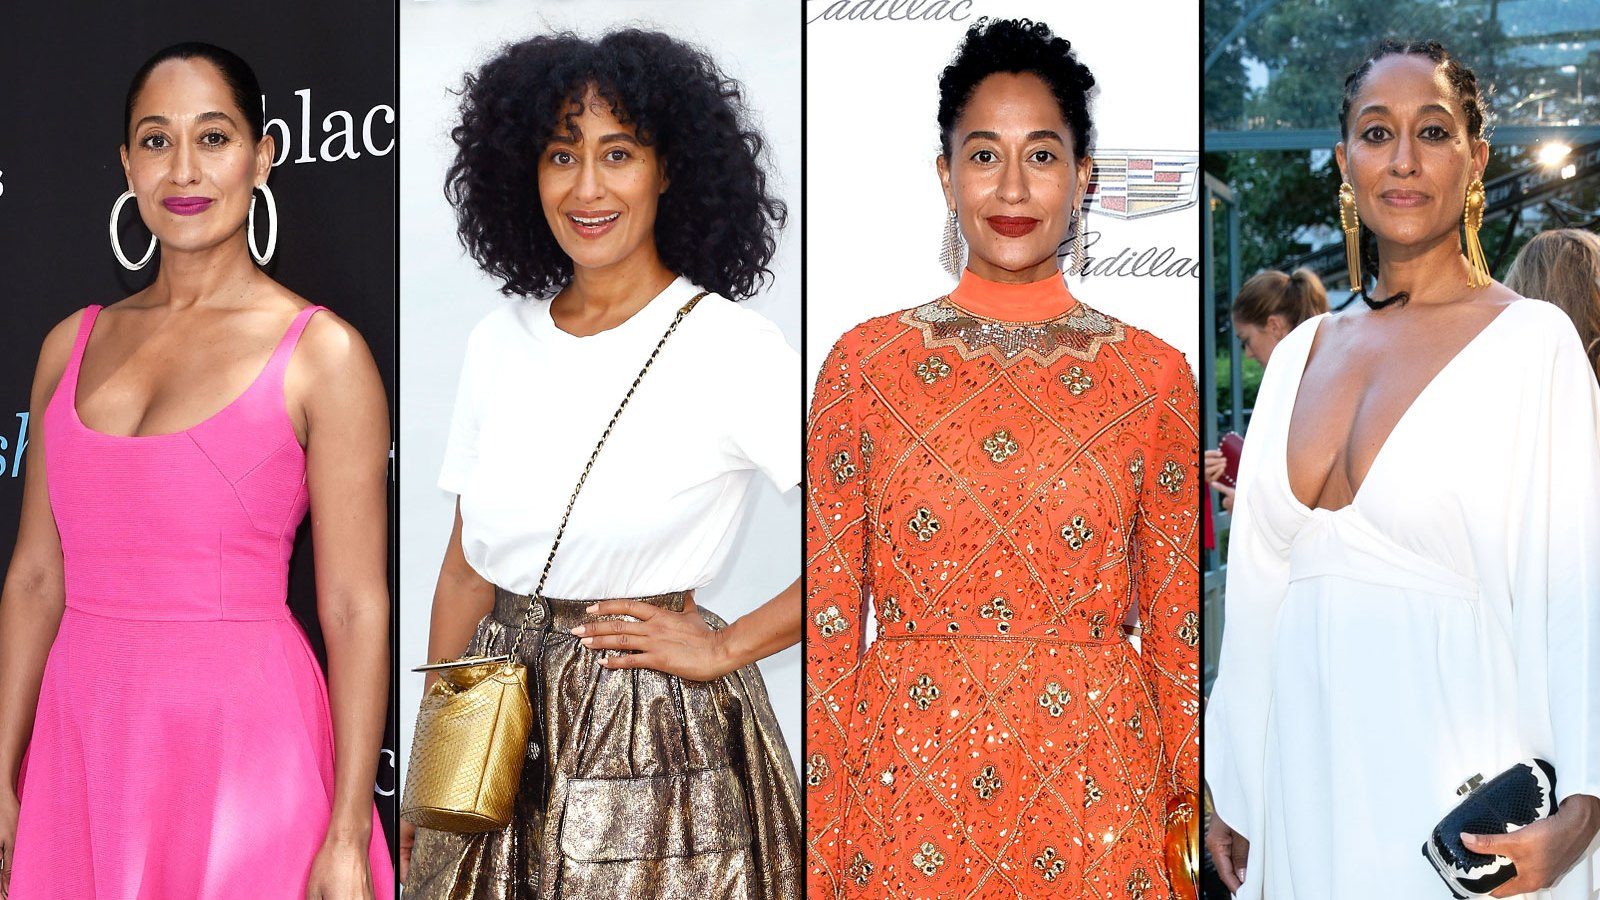 418258be2b9 Tracee Ellis Ross  Red Carpet Style  See Her Best Looks!